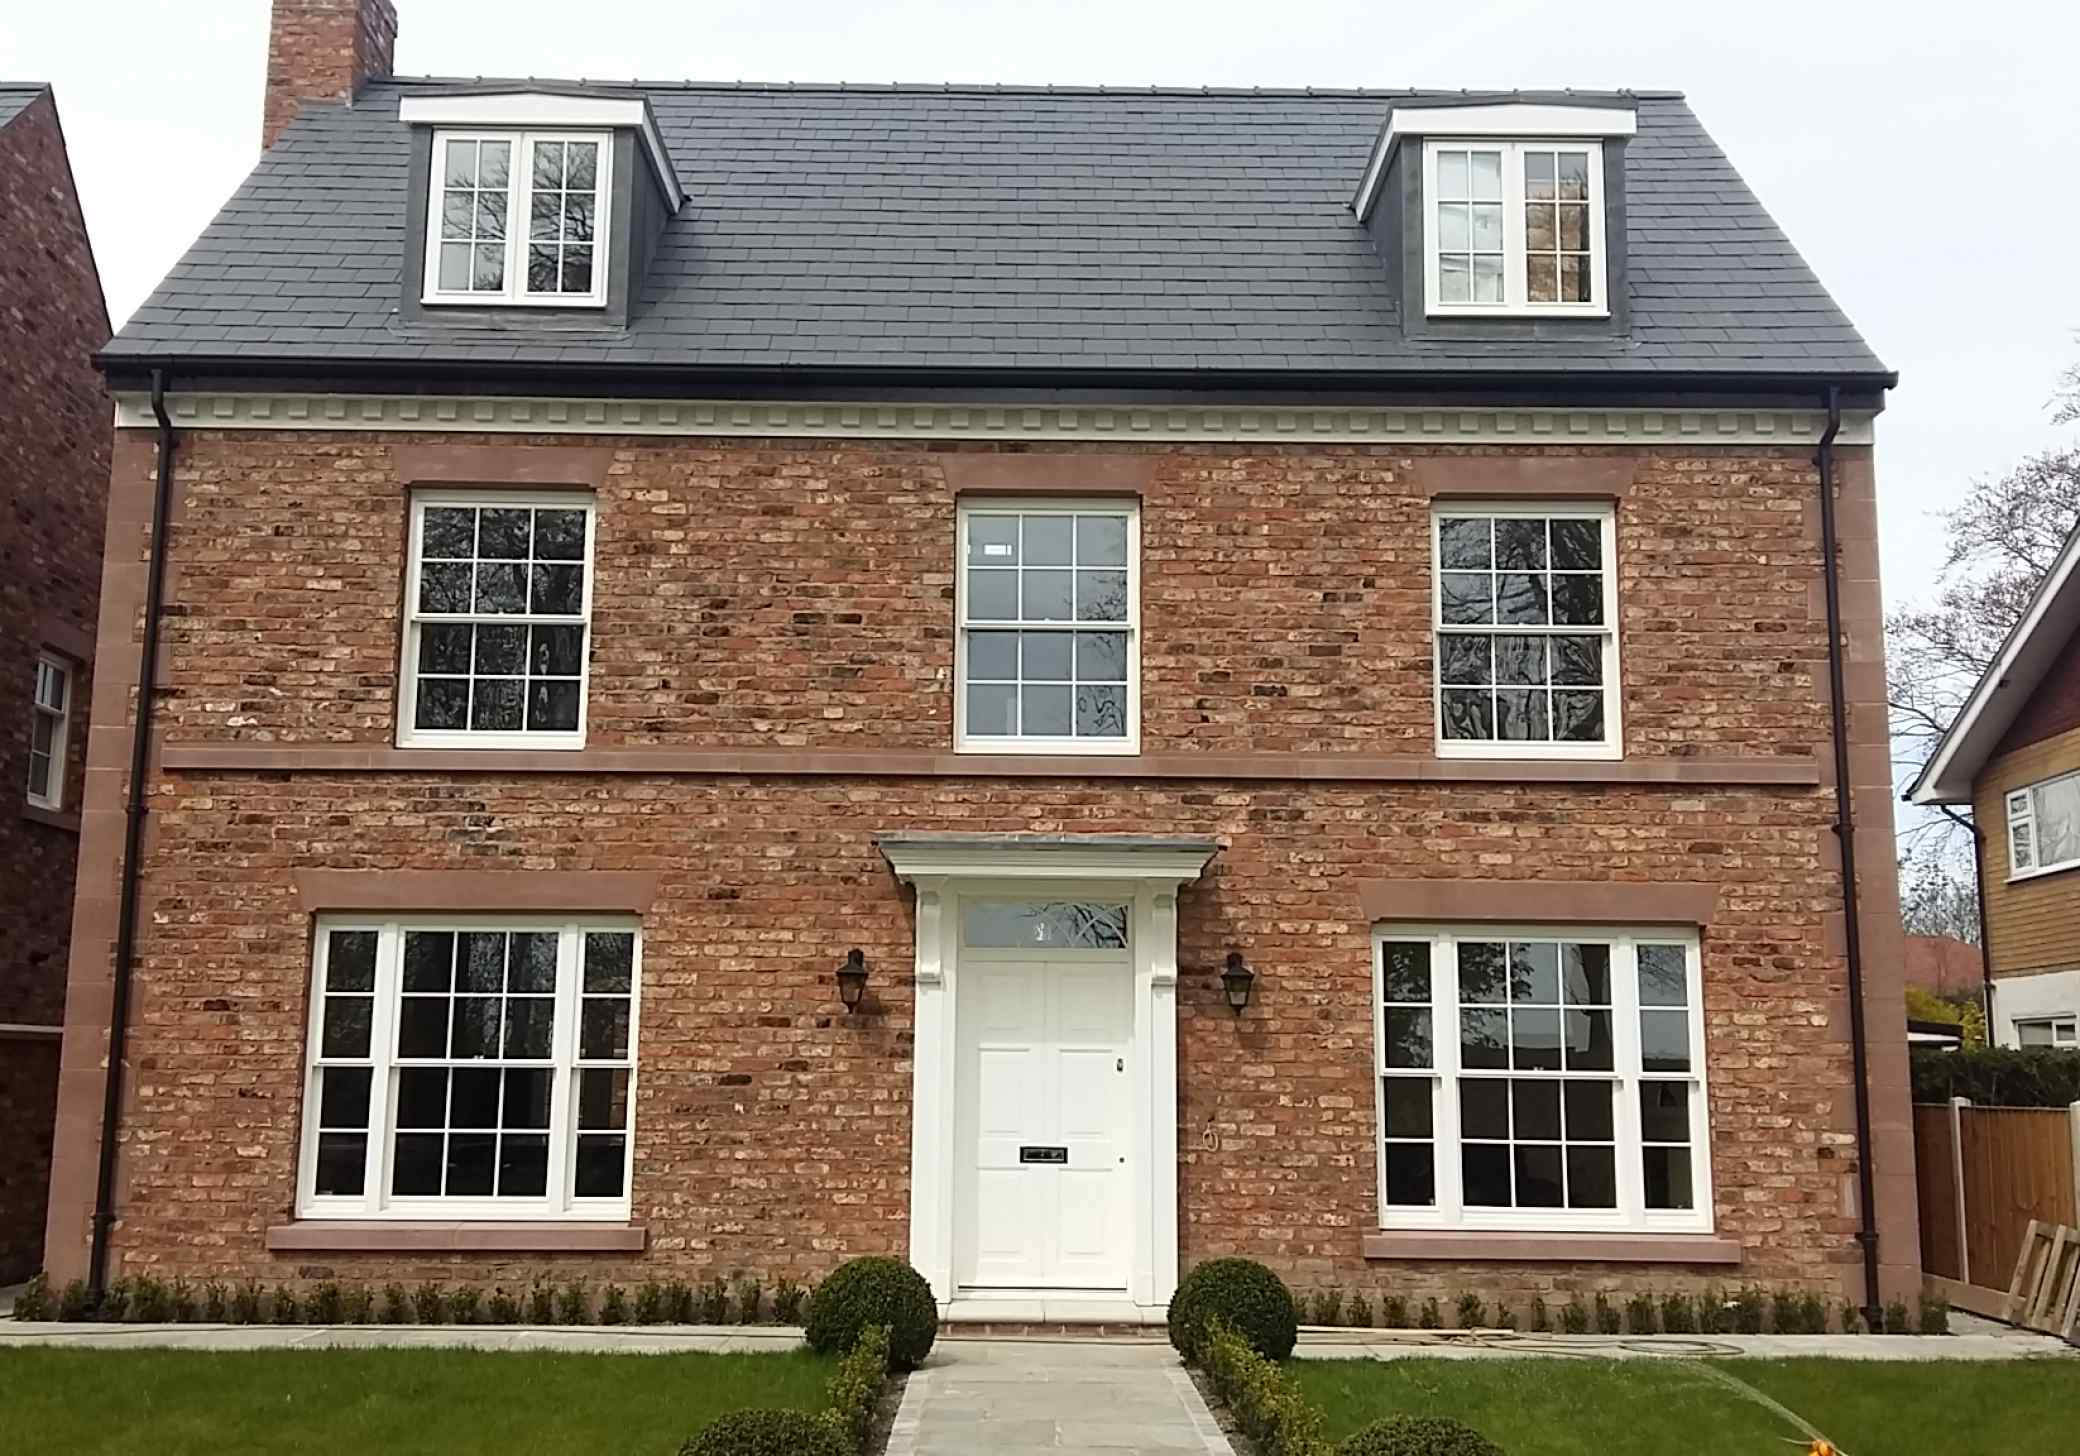 New georgian style houses hoole chester for Modern georgian style homes